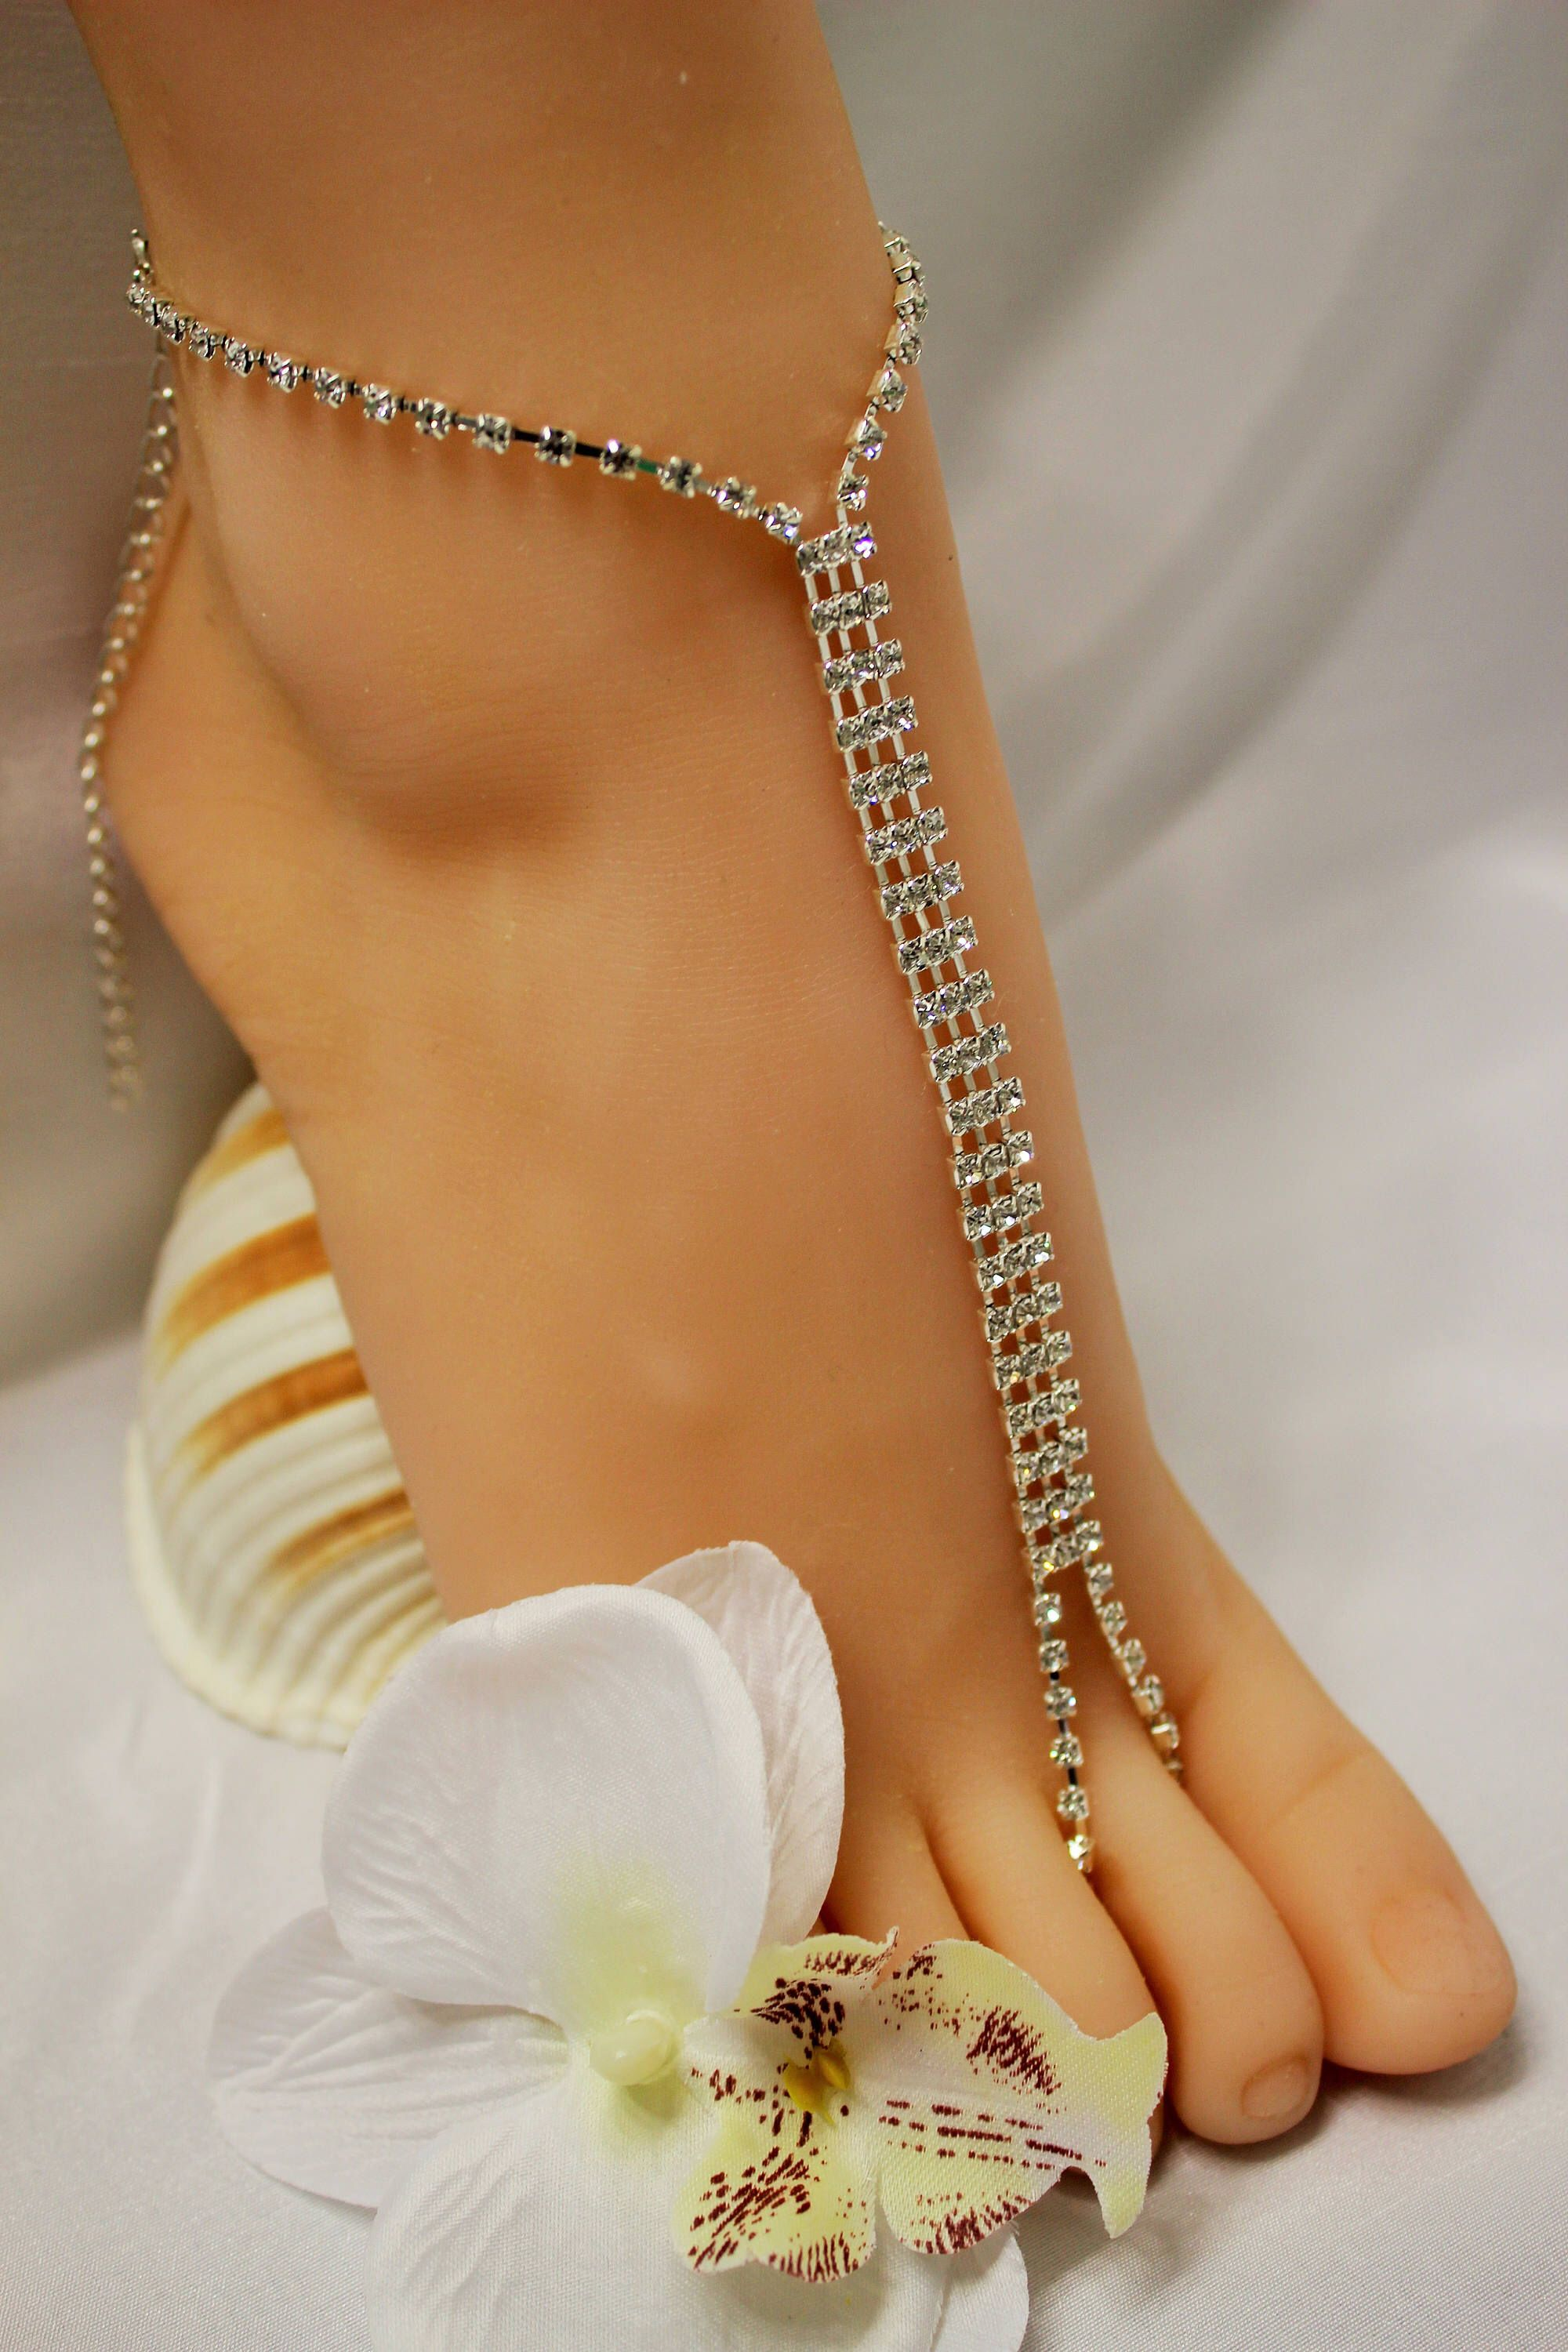 silver barefoot dance style foot indian jewellery pin anklet anklets bohemian wedding jewelled ancient sandals boho jewelry